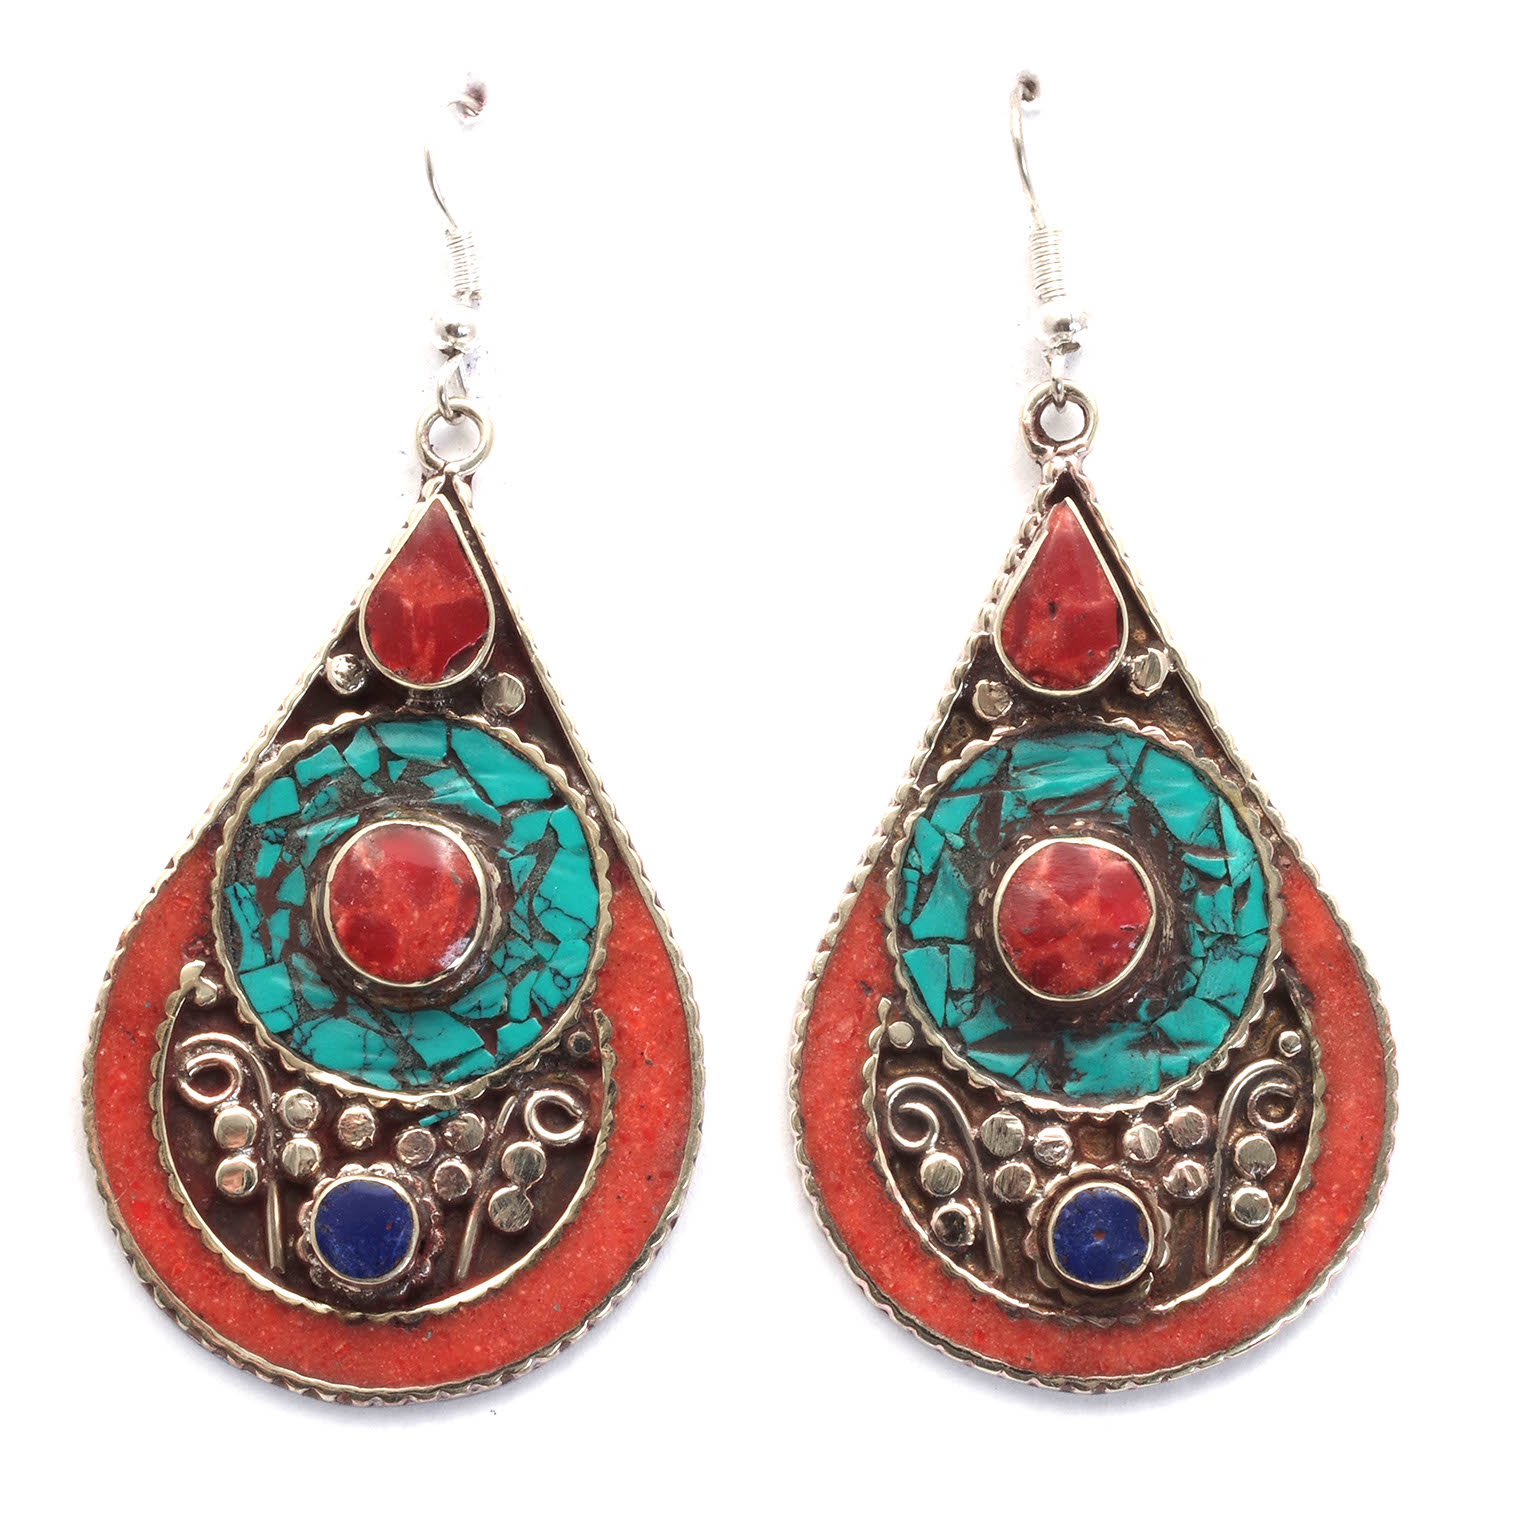 Elegant Tear Drop Earrings